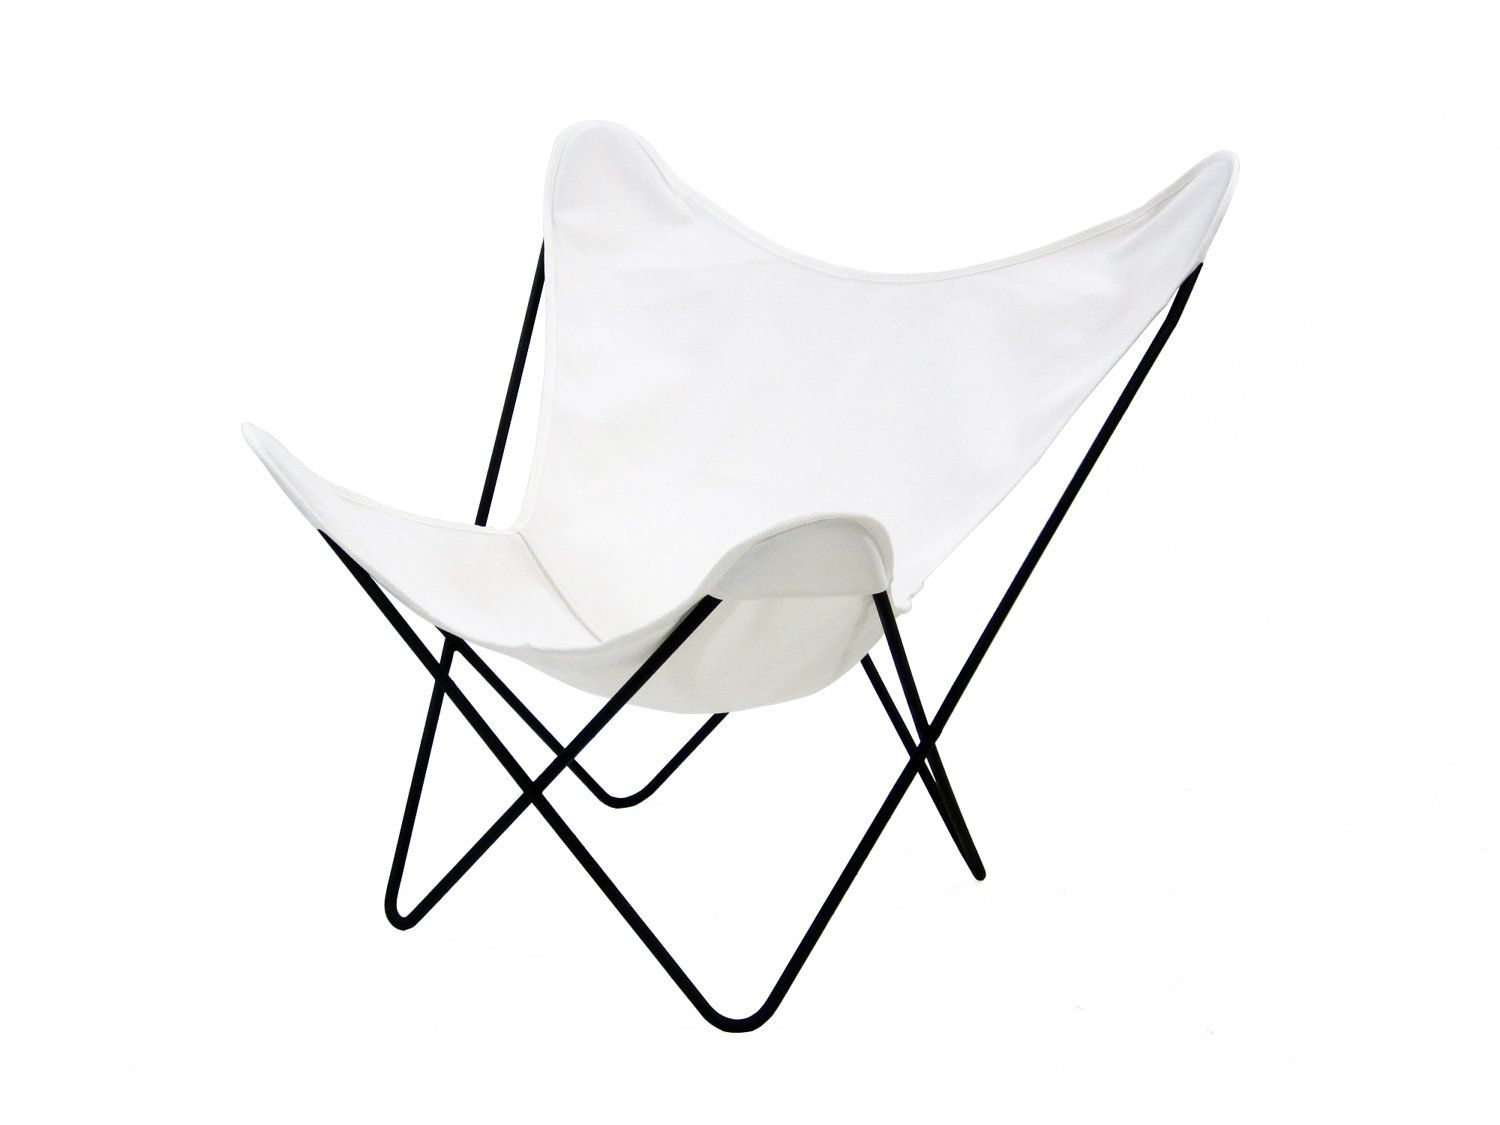 Vintage Knoll Hardoy BKF Butterfly Chair With White Canvas Sling, 260, Via  Etsy